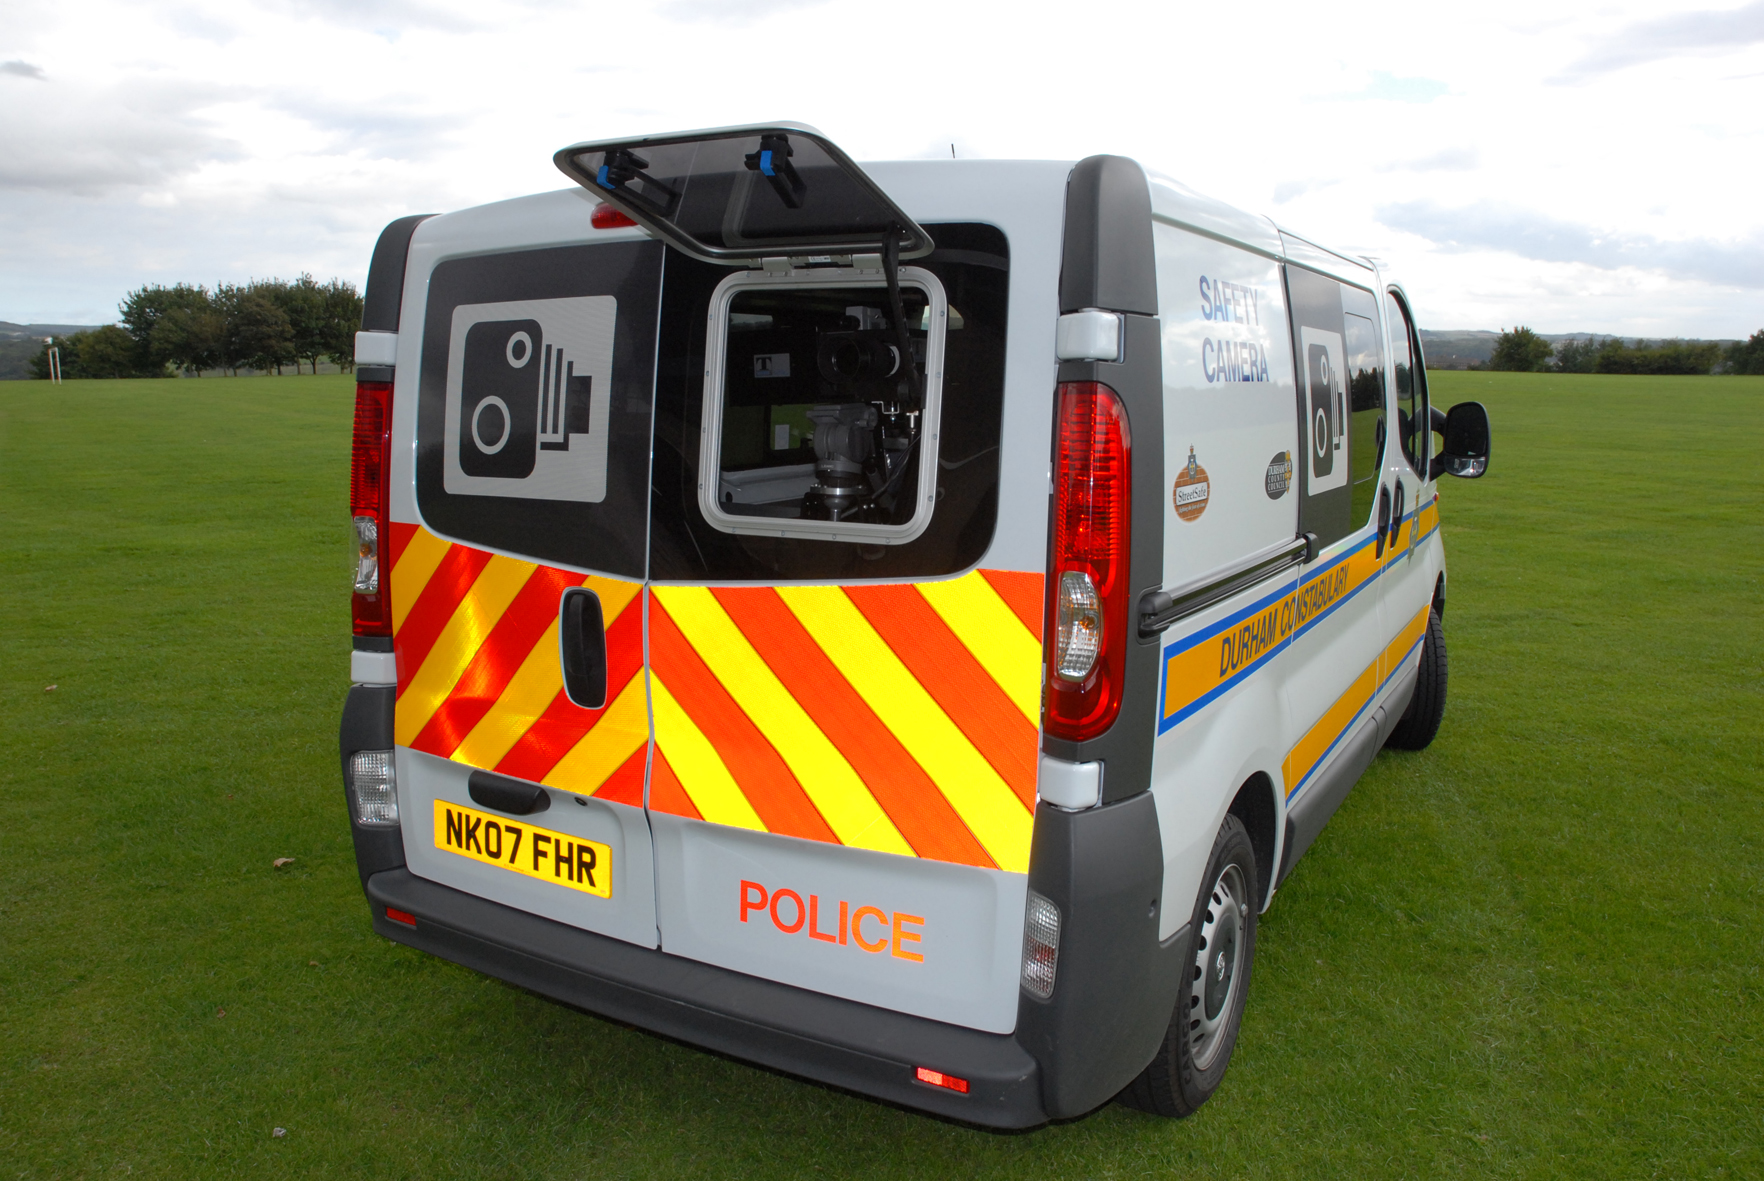 93205cb4bc Man fed up with speeding motorists buys Police camera van off eBay and  parks it outside home